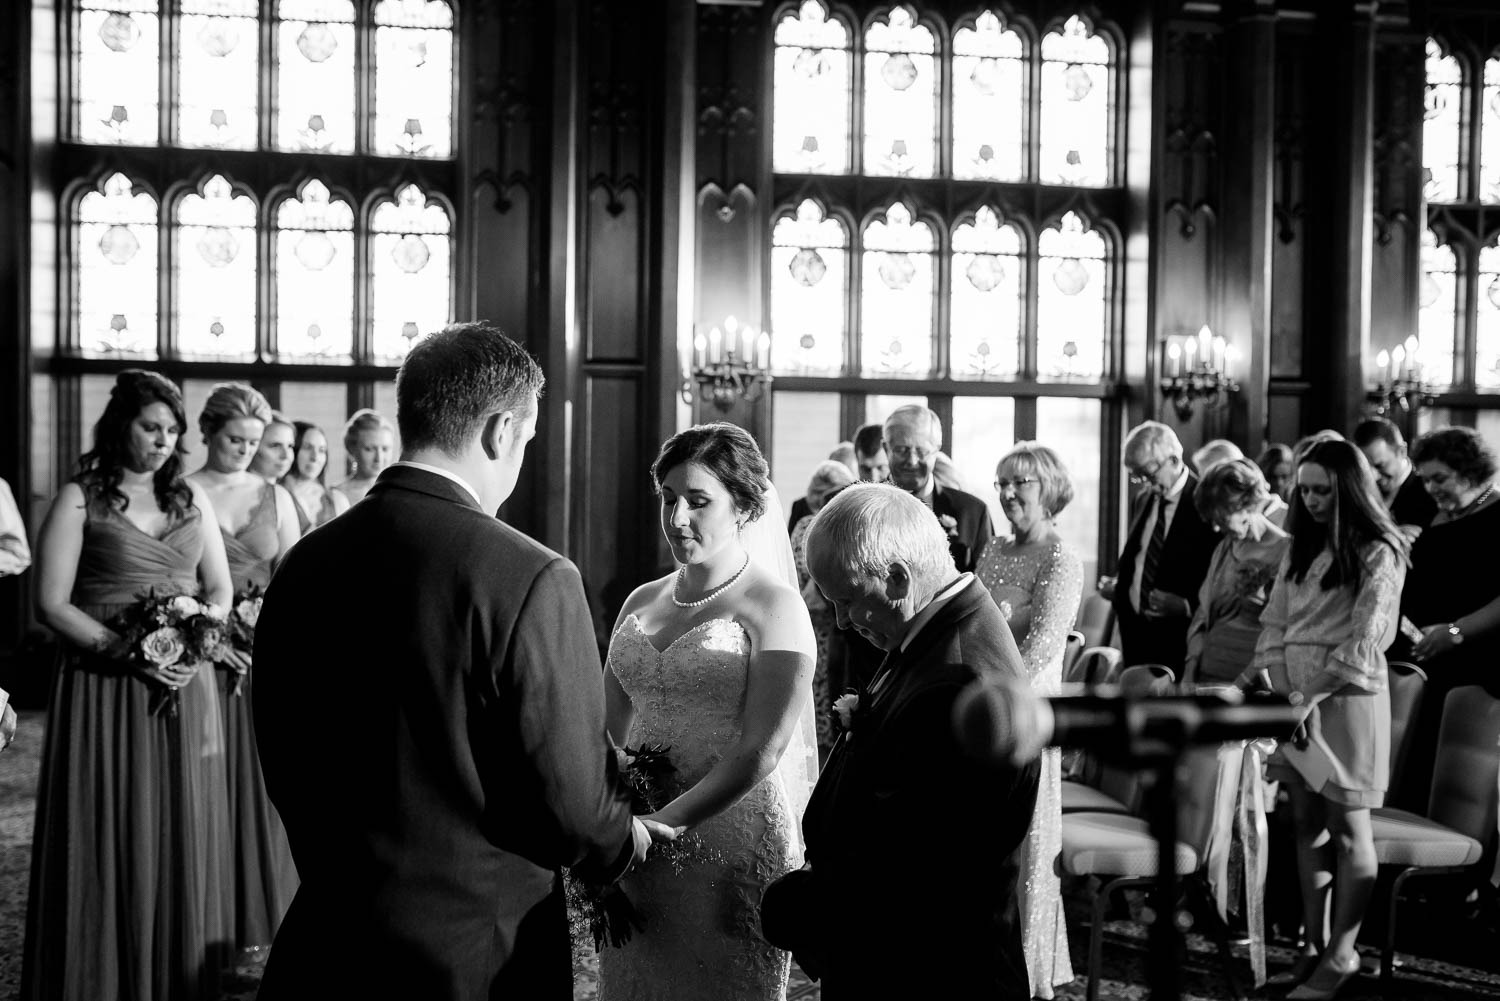 Wedding ceremony in the Michigan room during a University Club of Chicago wedding.